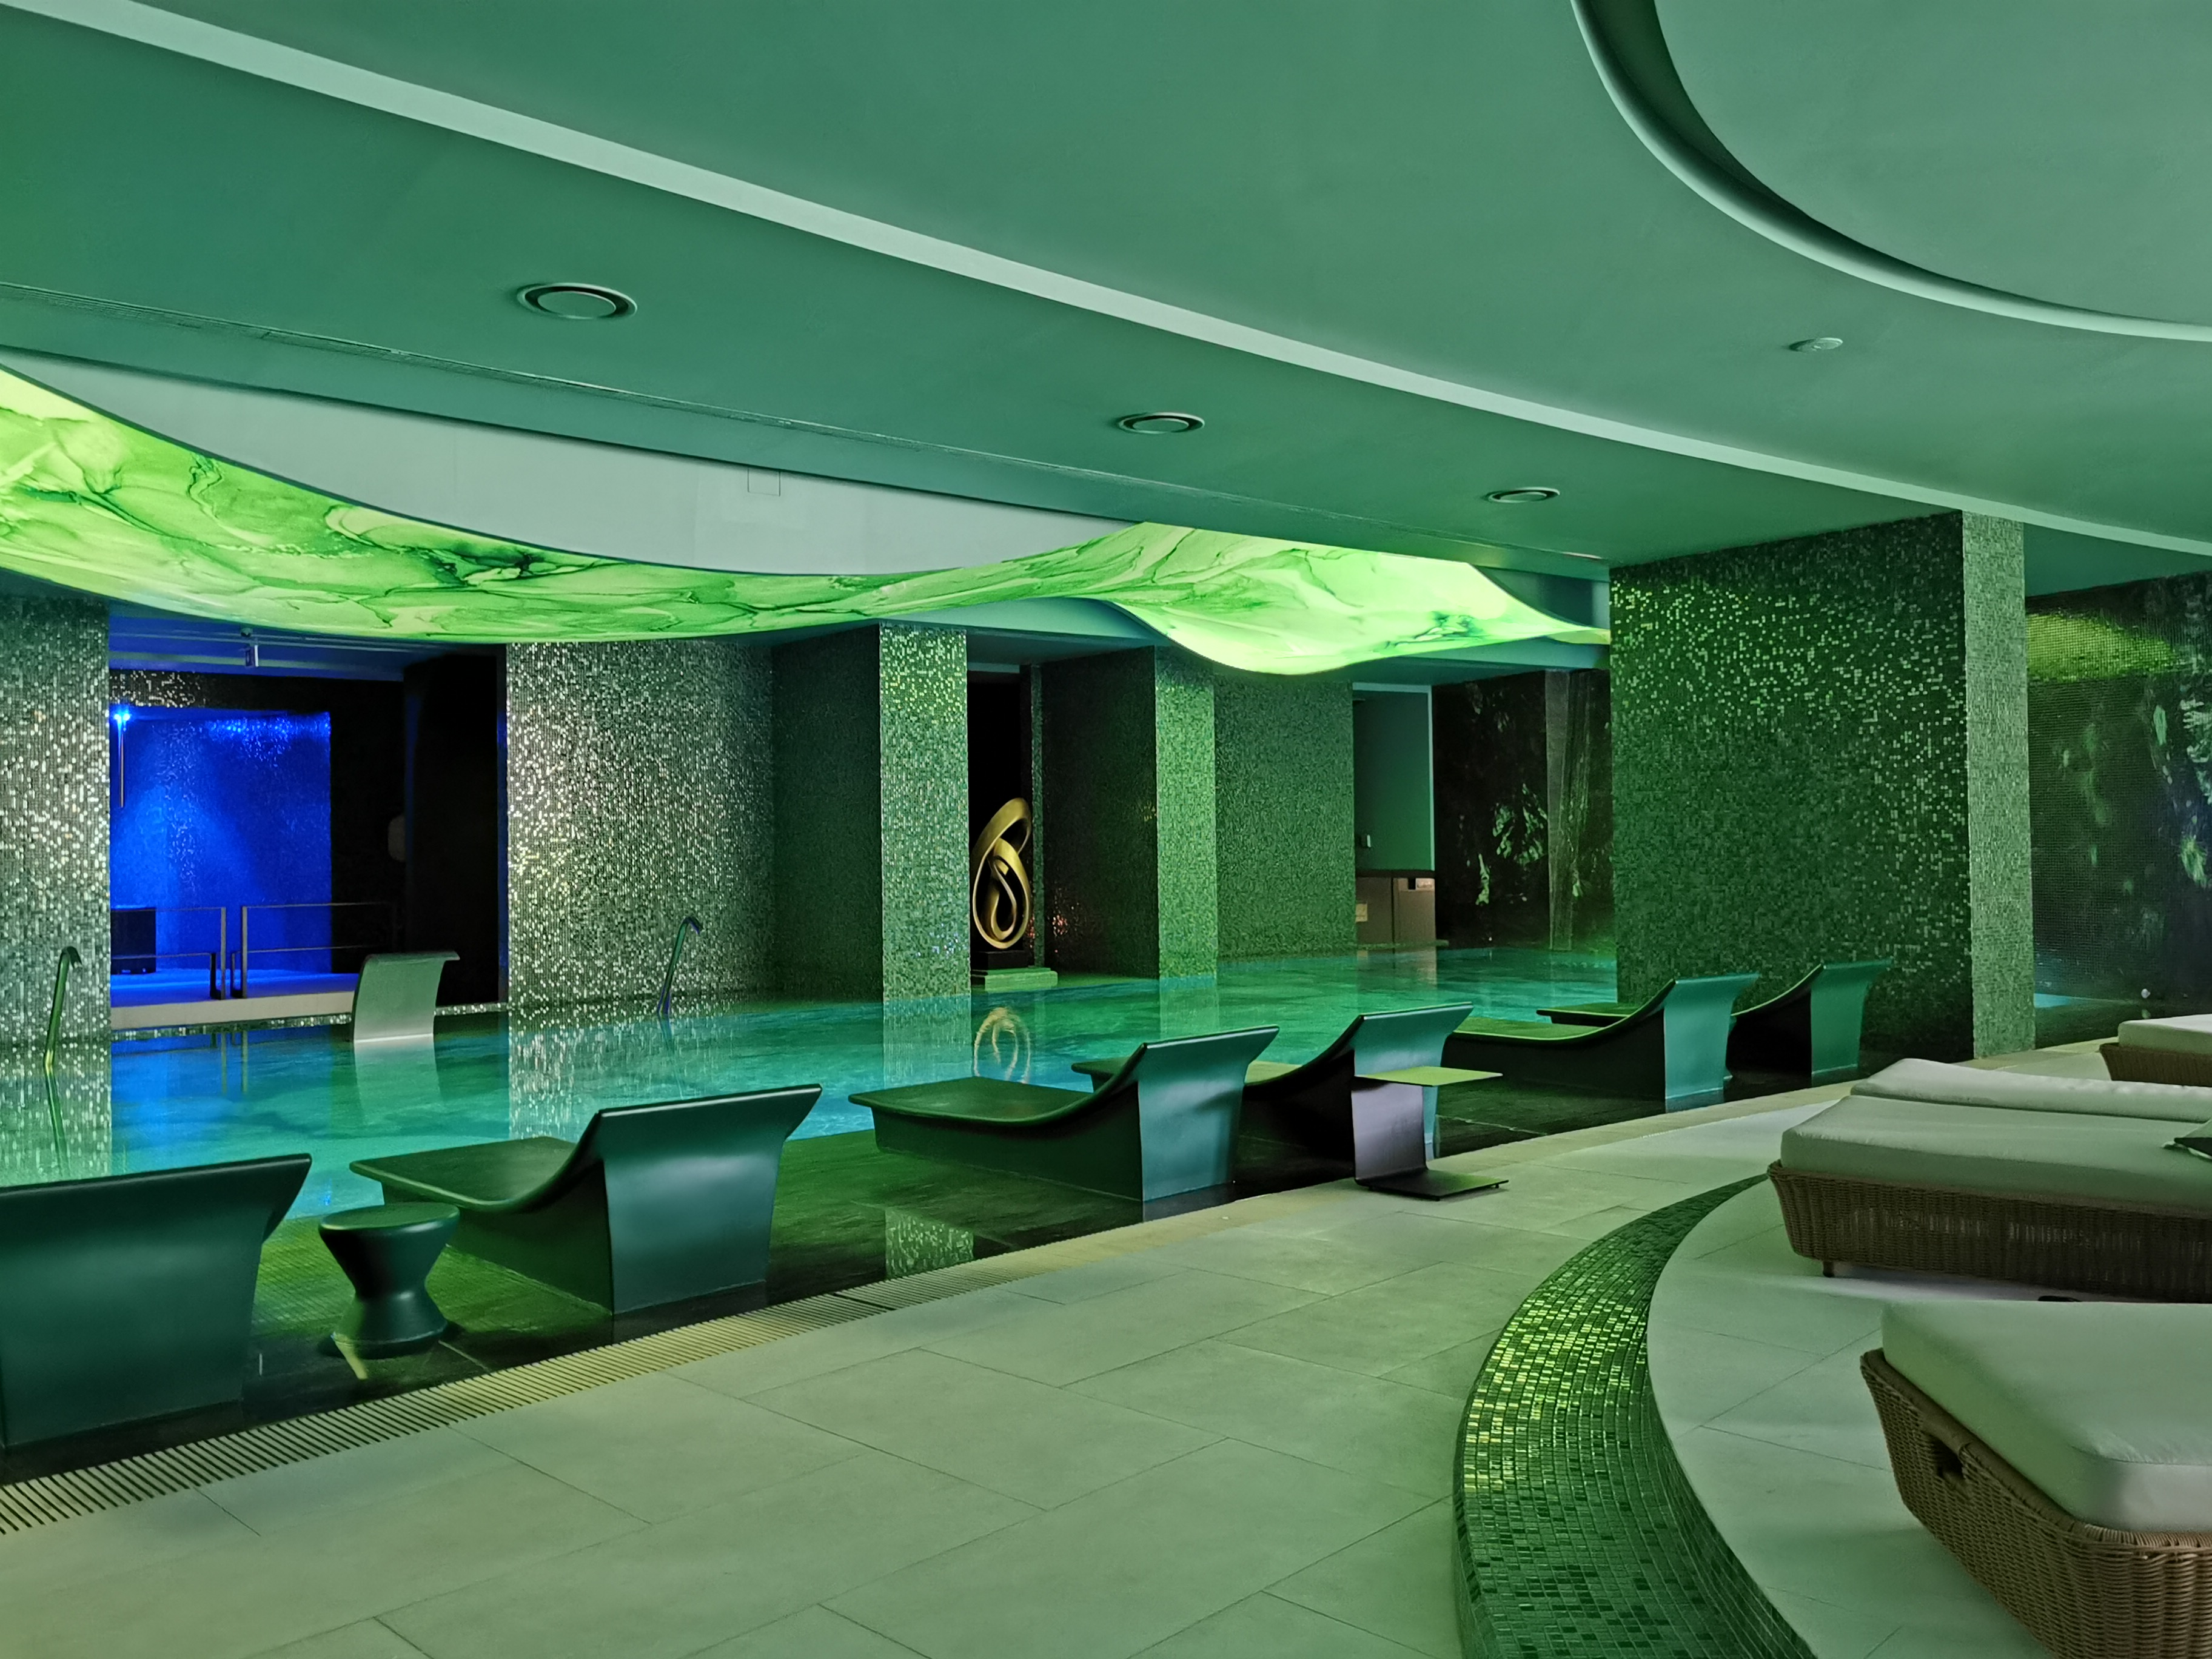 Inside the Laurea Spa at the Savoy Palace